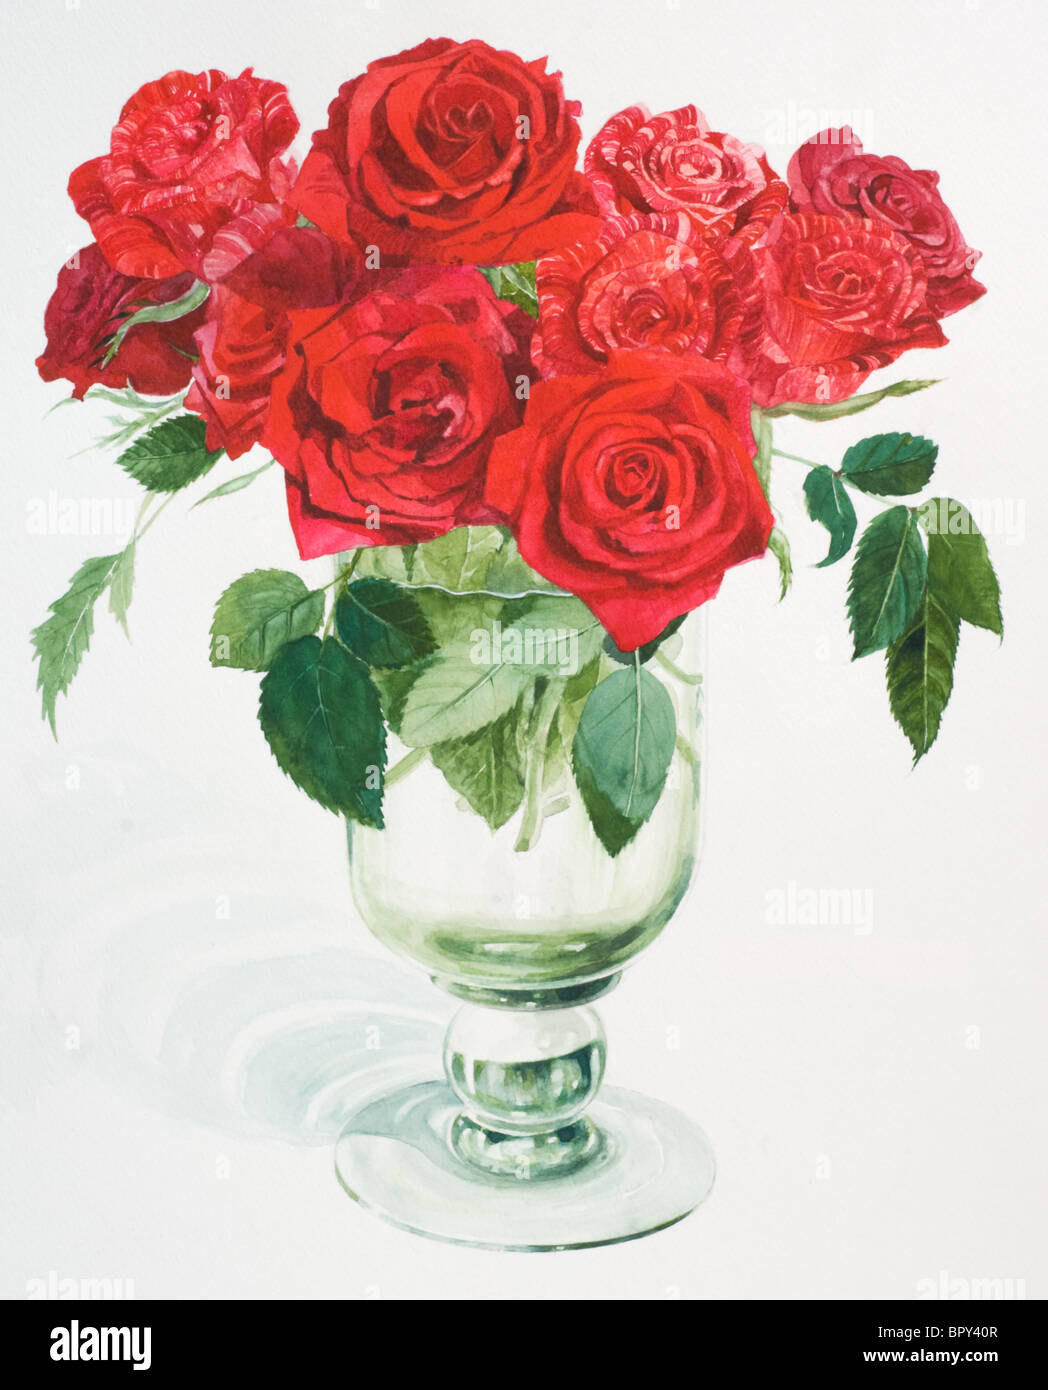 A watercolor painting of red roses in a vase stock photo royalty a watercolor painting of red roses in a vase floridaeventfo Choice Image